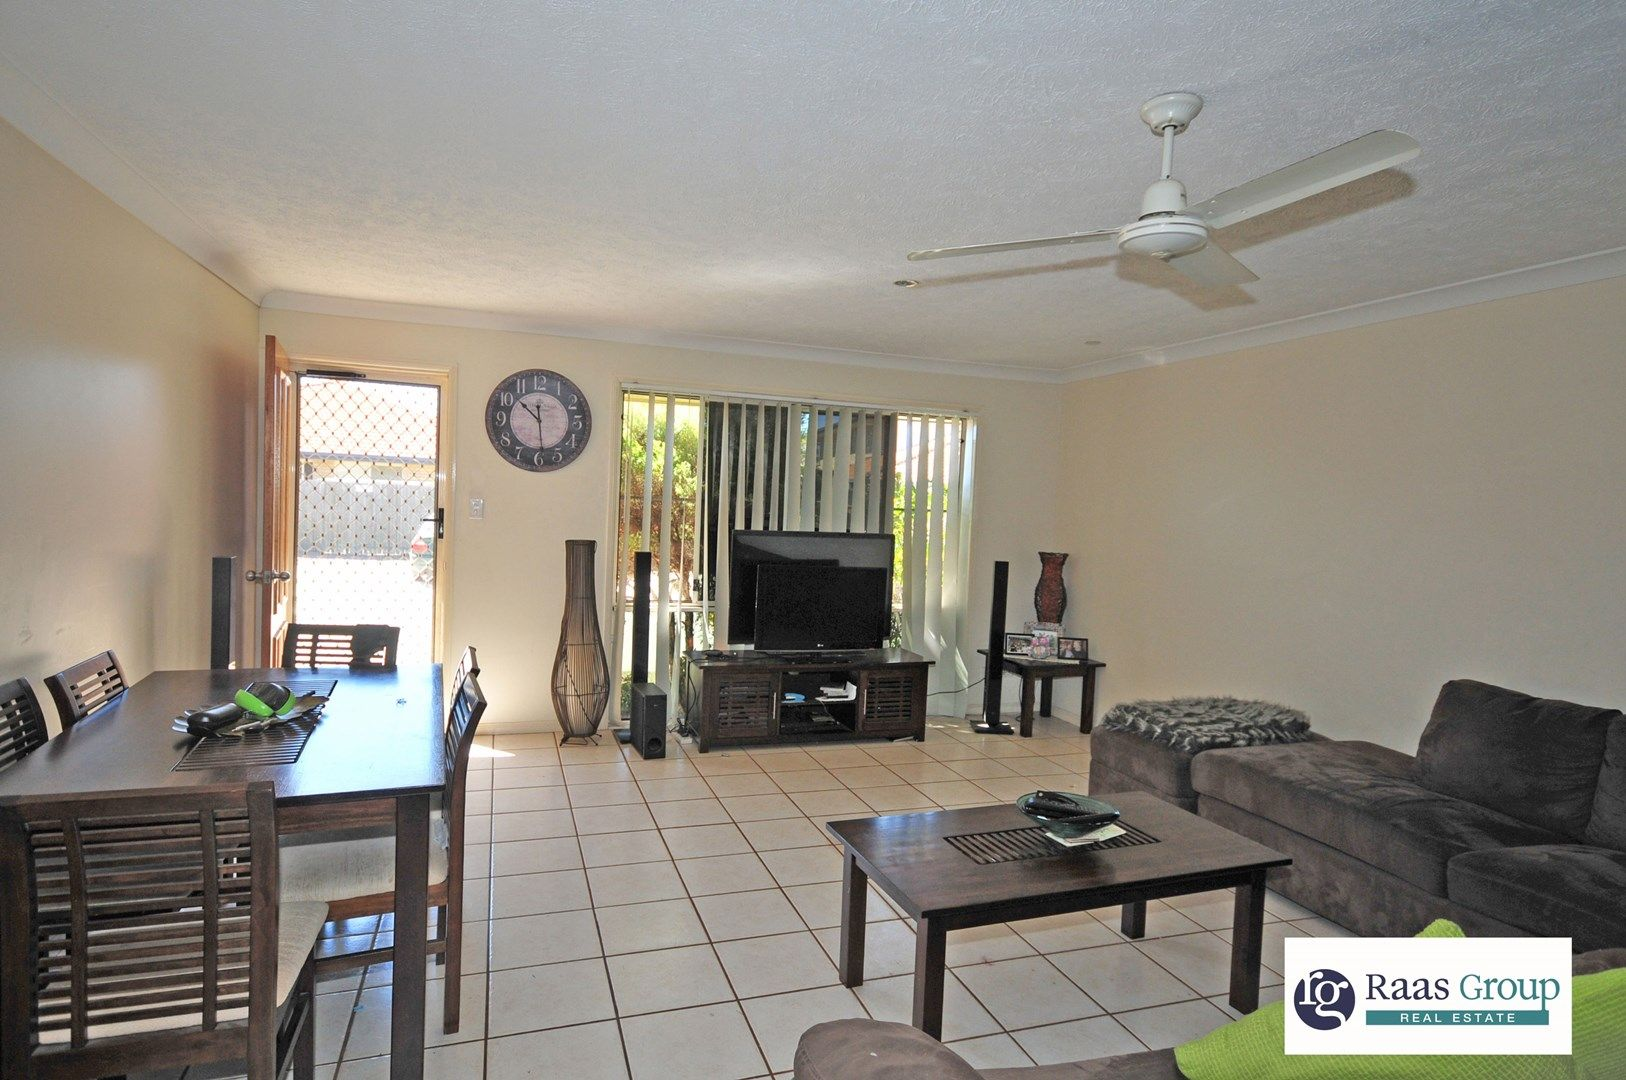 719/2 Nicol  way, Brendale QLD 4500, Image 0